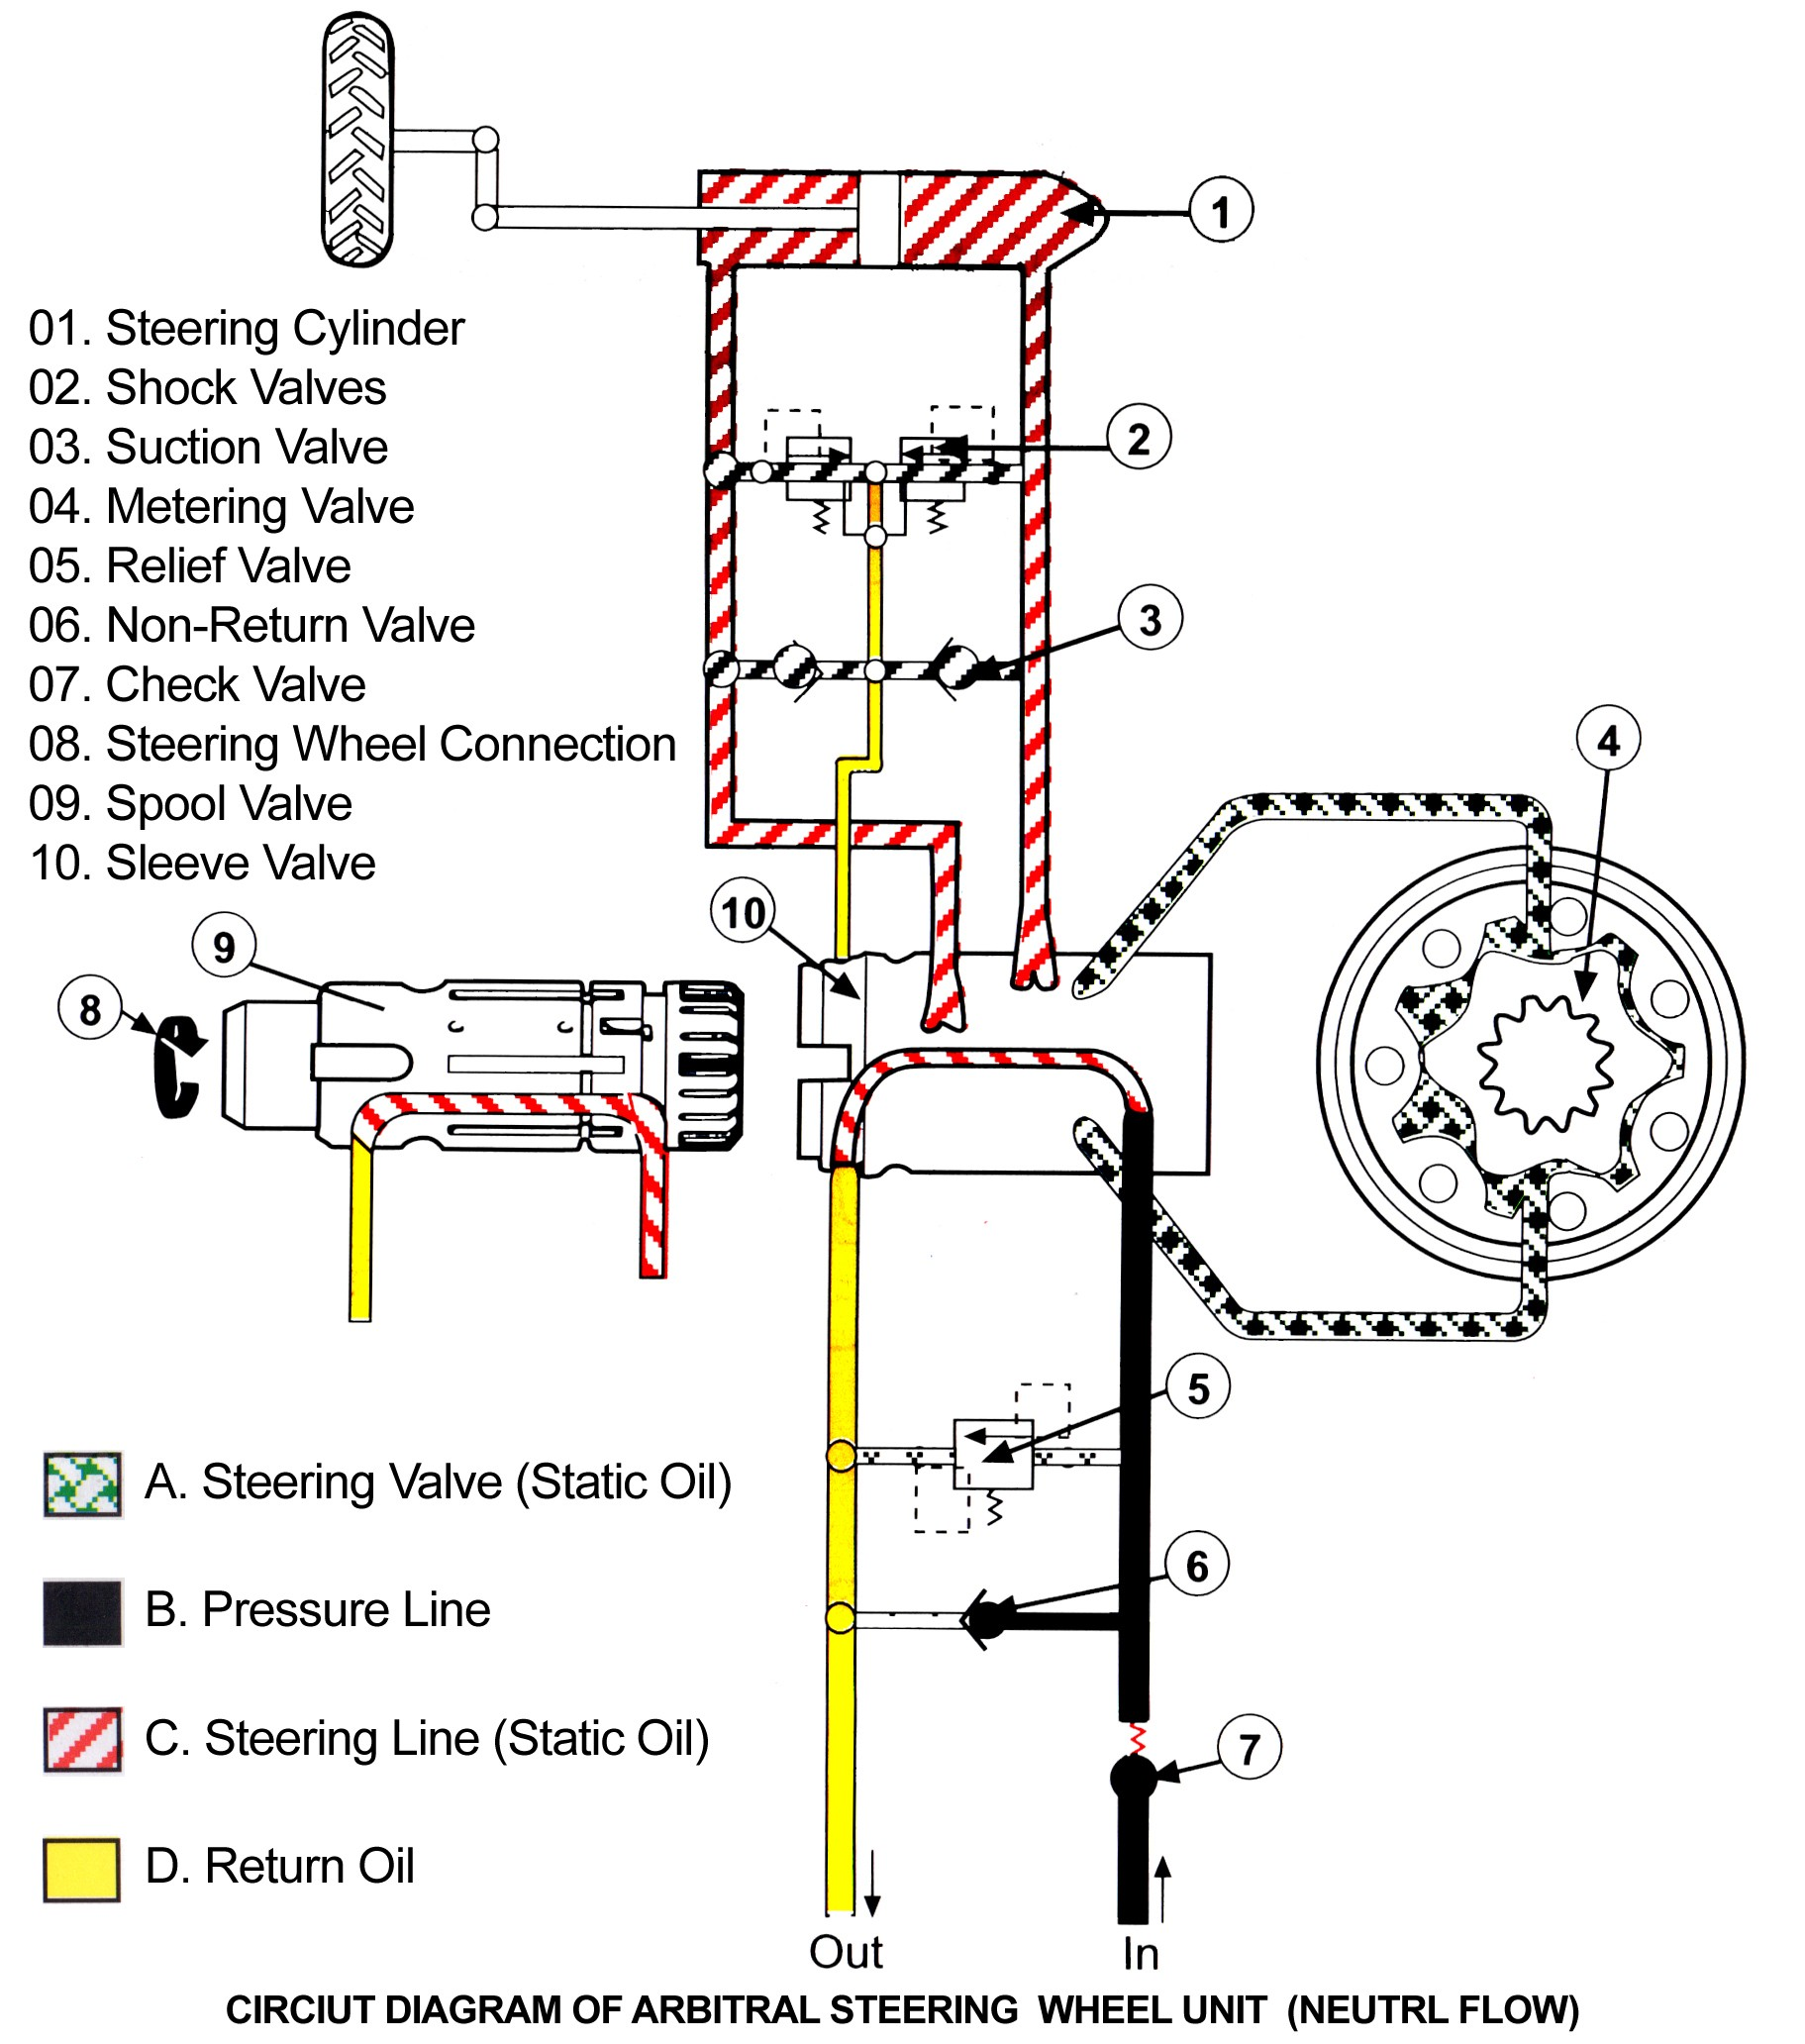 power steering schematic diagram i am trying fit a new